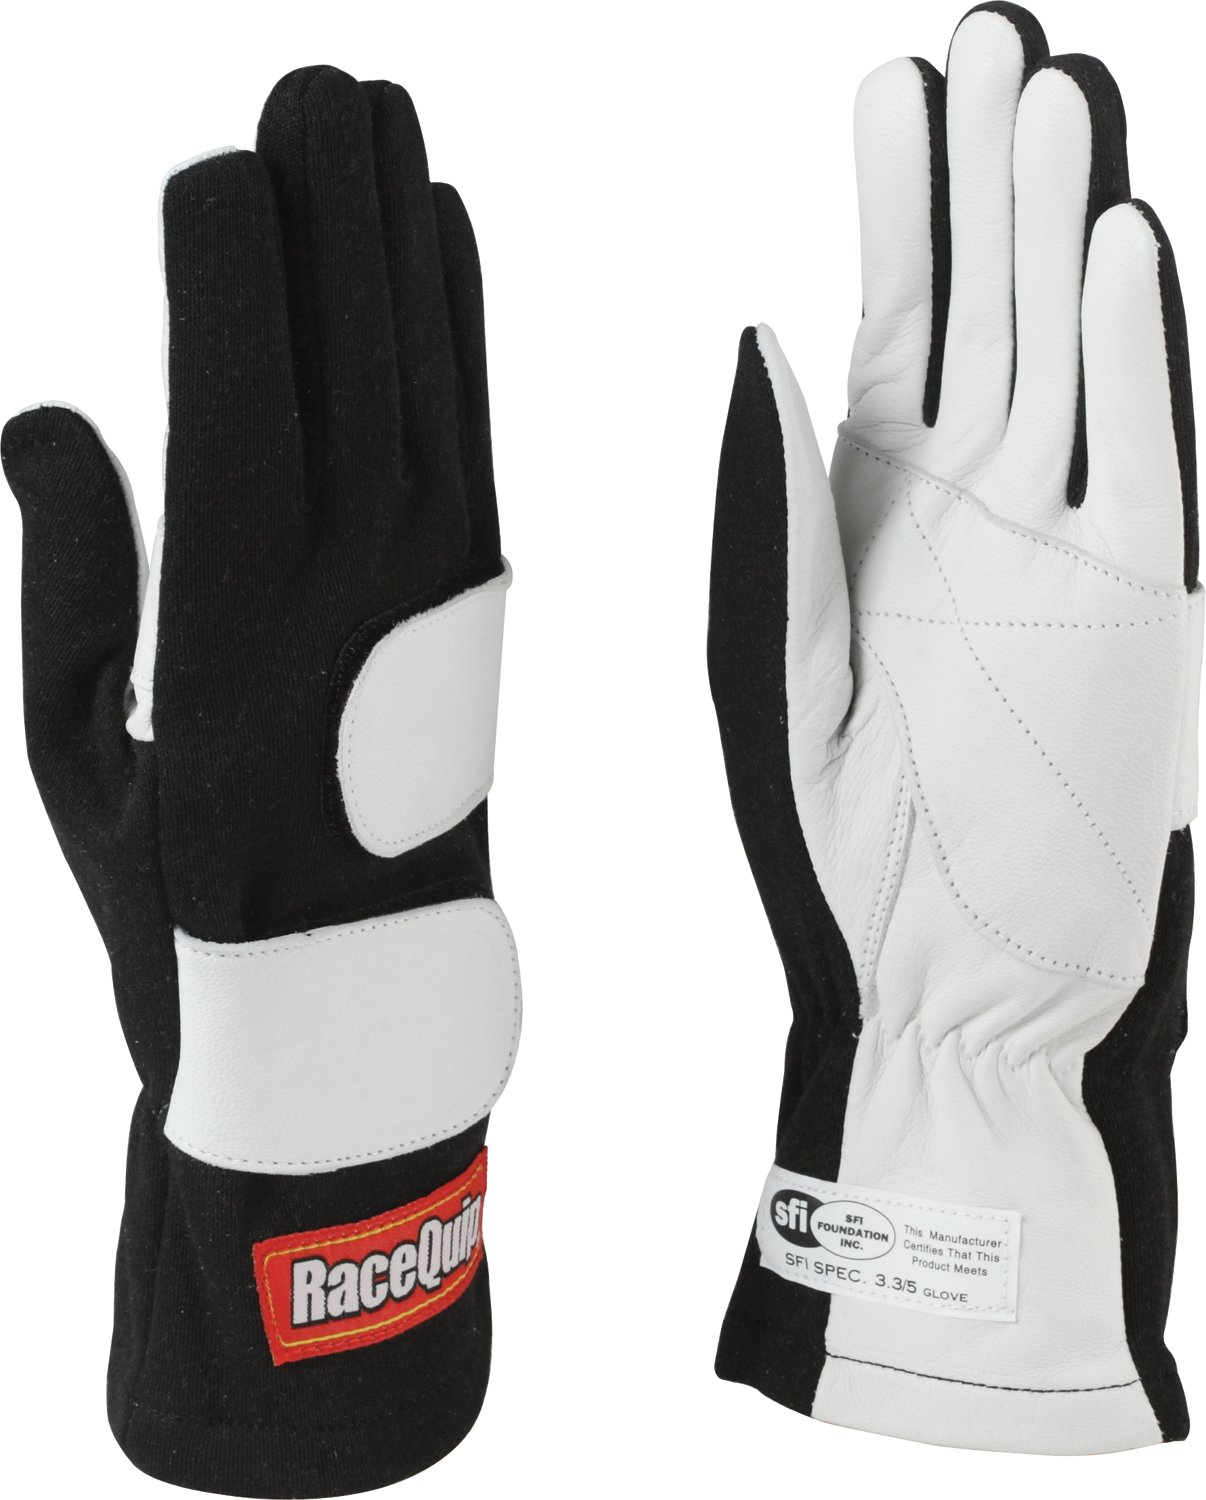 RaceQuip 312005 Mod Series Large Black SFI 3.3/5 Double Layer Driving Gloves